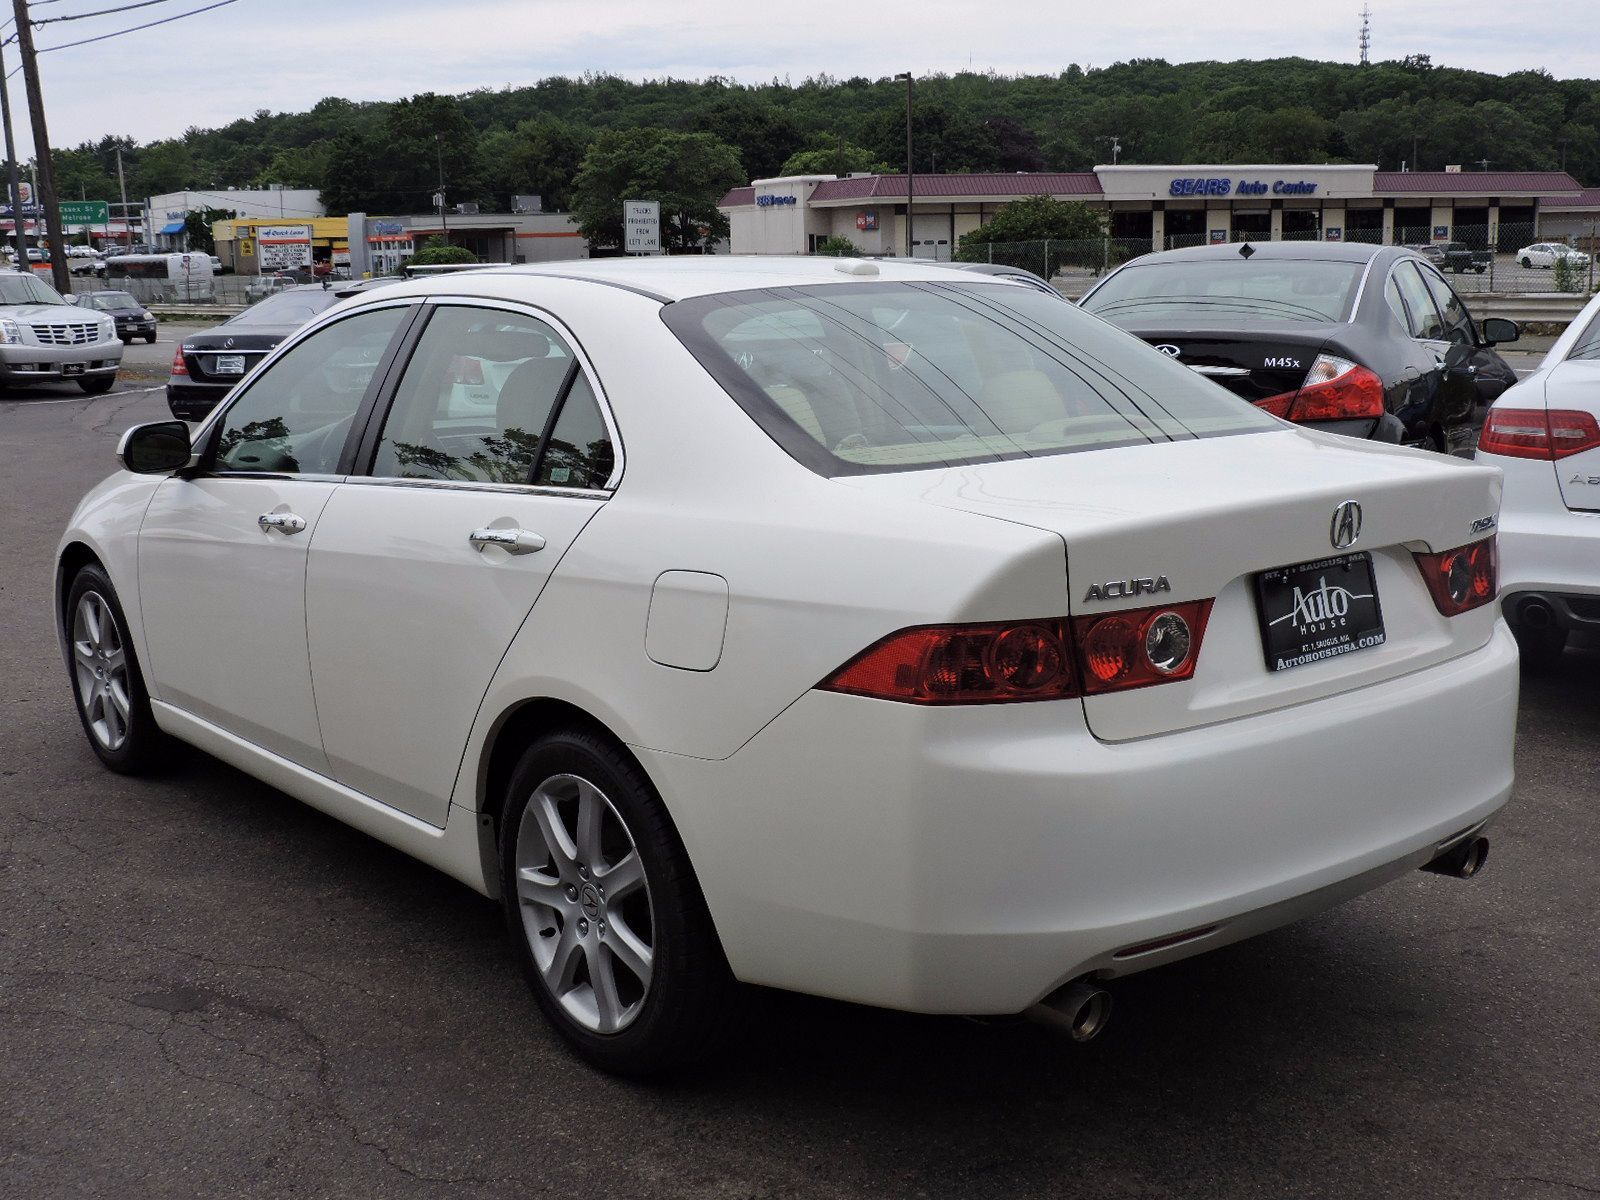 https://saugusautomall.com/uimages/vehicle/2995817/full/2005-Acura-TSX-JH4CL96905C003743-2420.jpeg